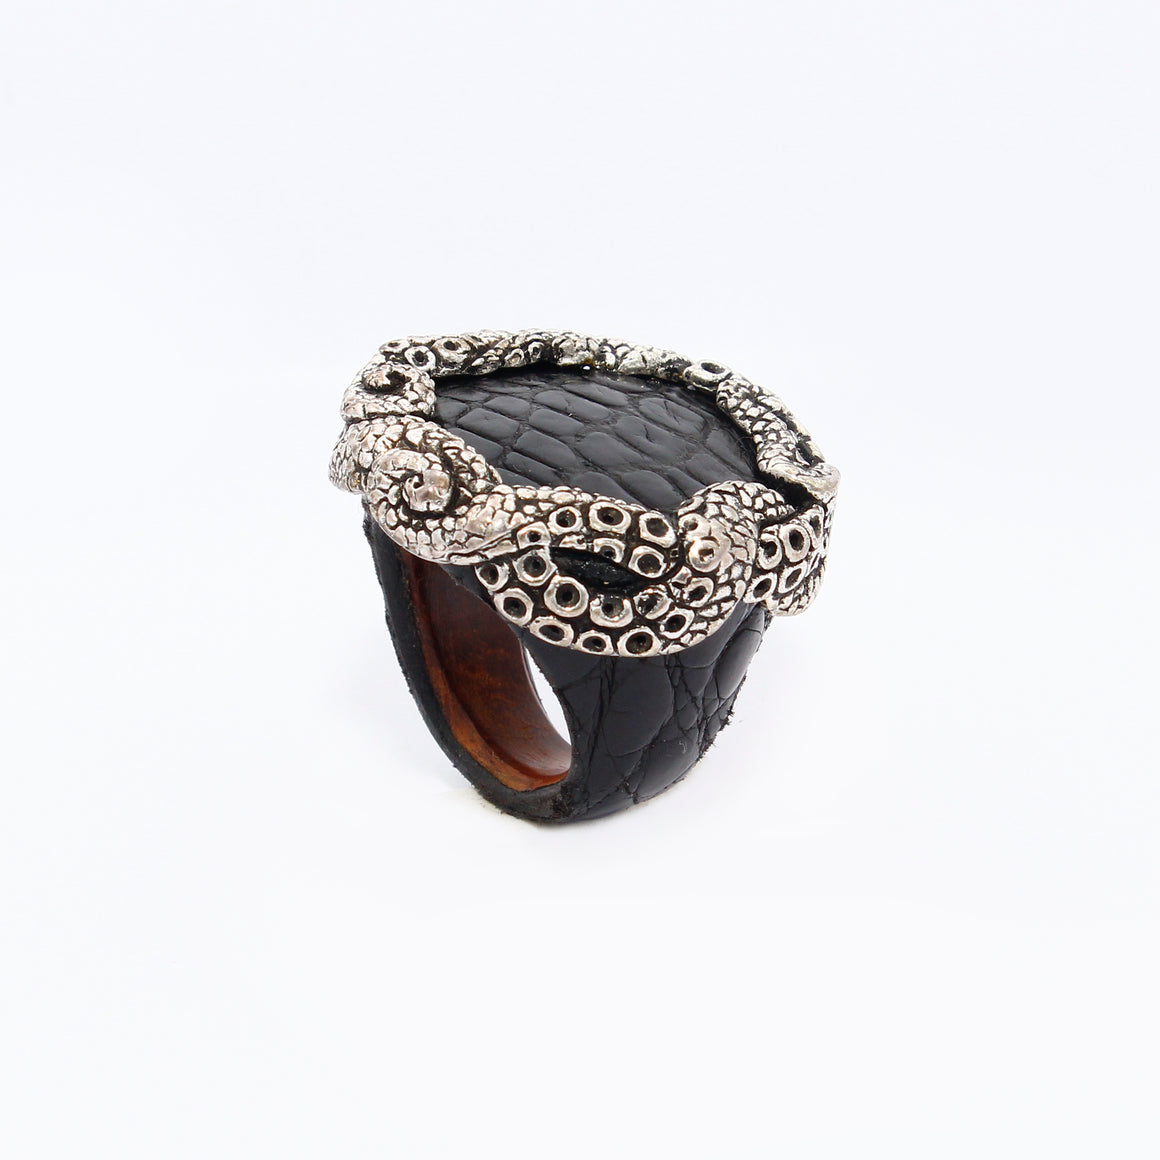 Ostrich skin ring with Tentacles crown